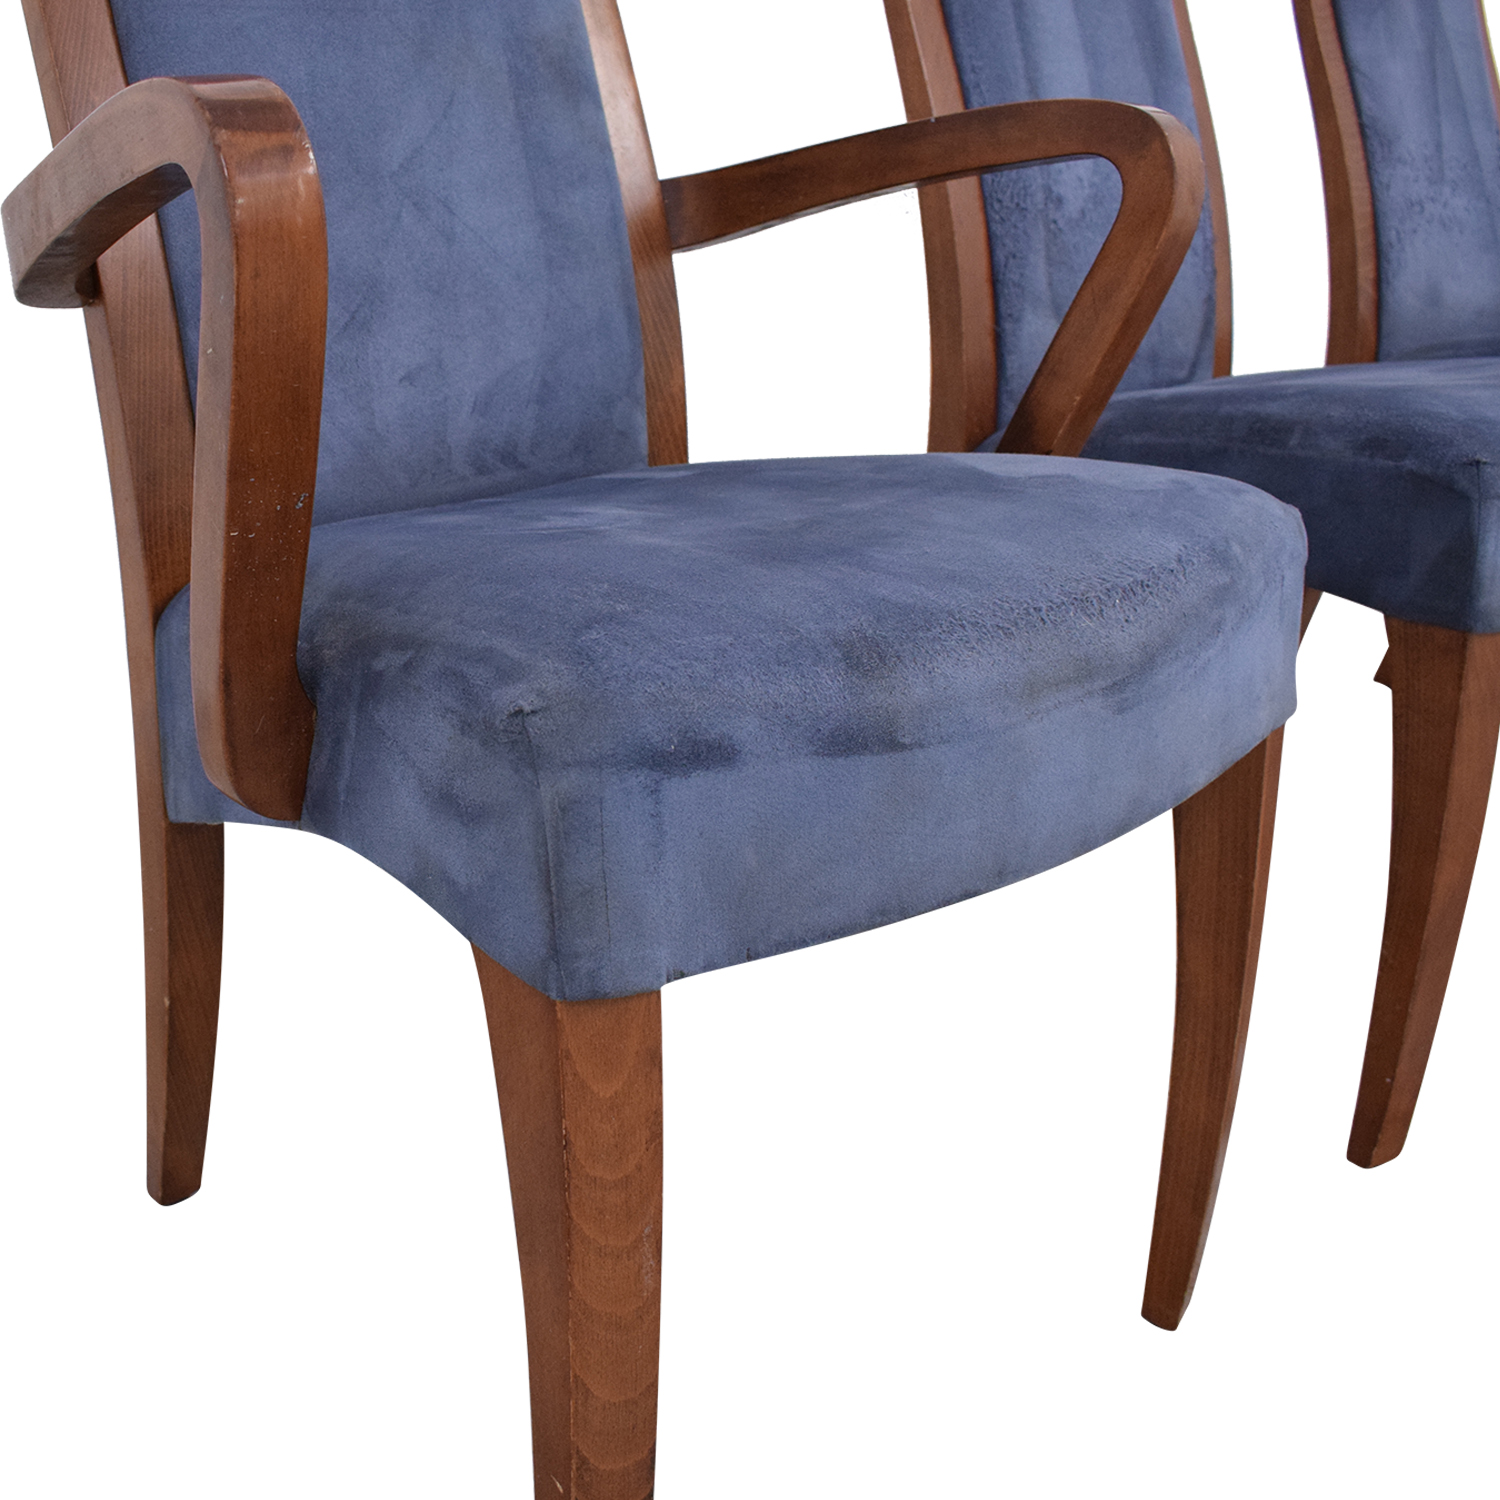 Andreu World Andreu World Dining Chairs discount